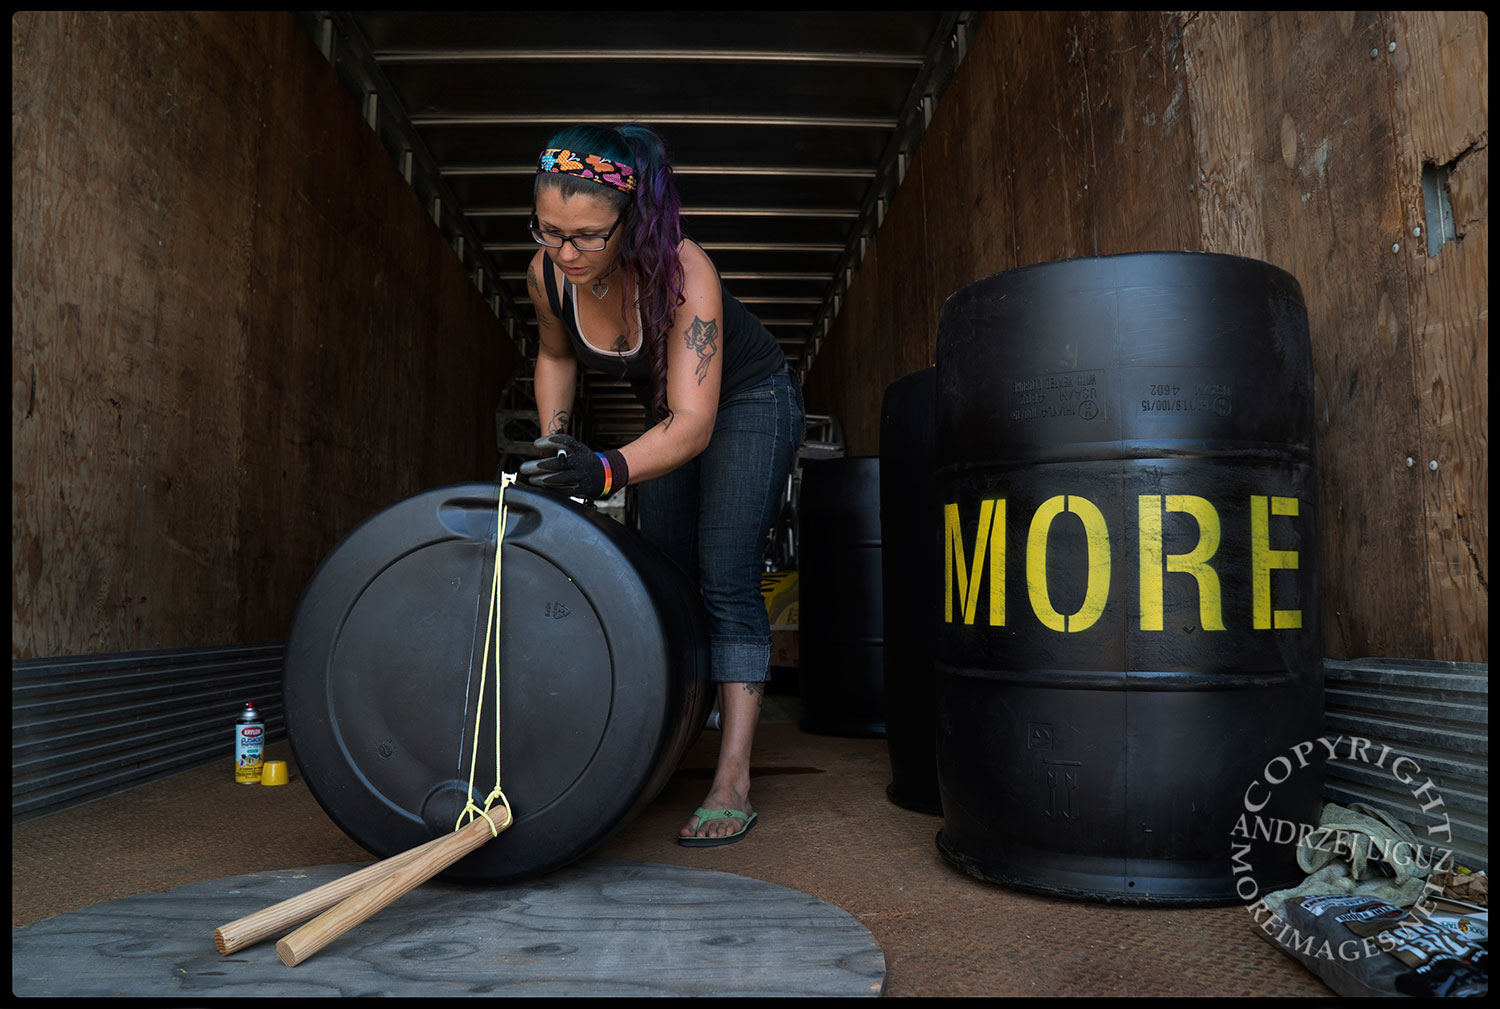 Blair stenciling the MORE (Ministry Of Random Events) Drums, Scotty's Warehouse, Petaluma, CA 2015-04-01